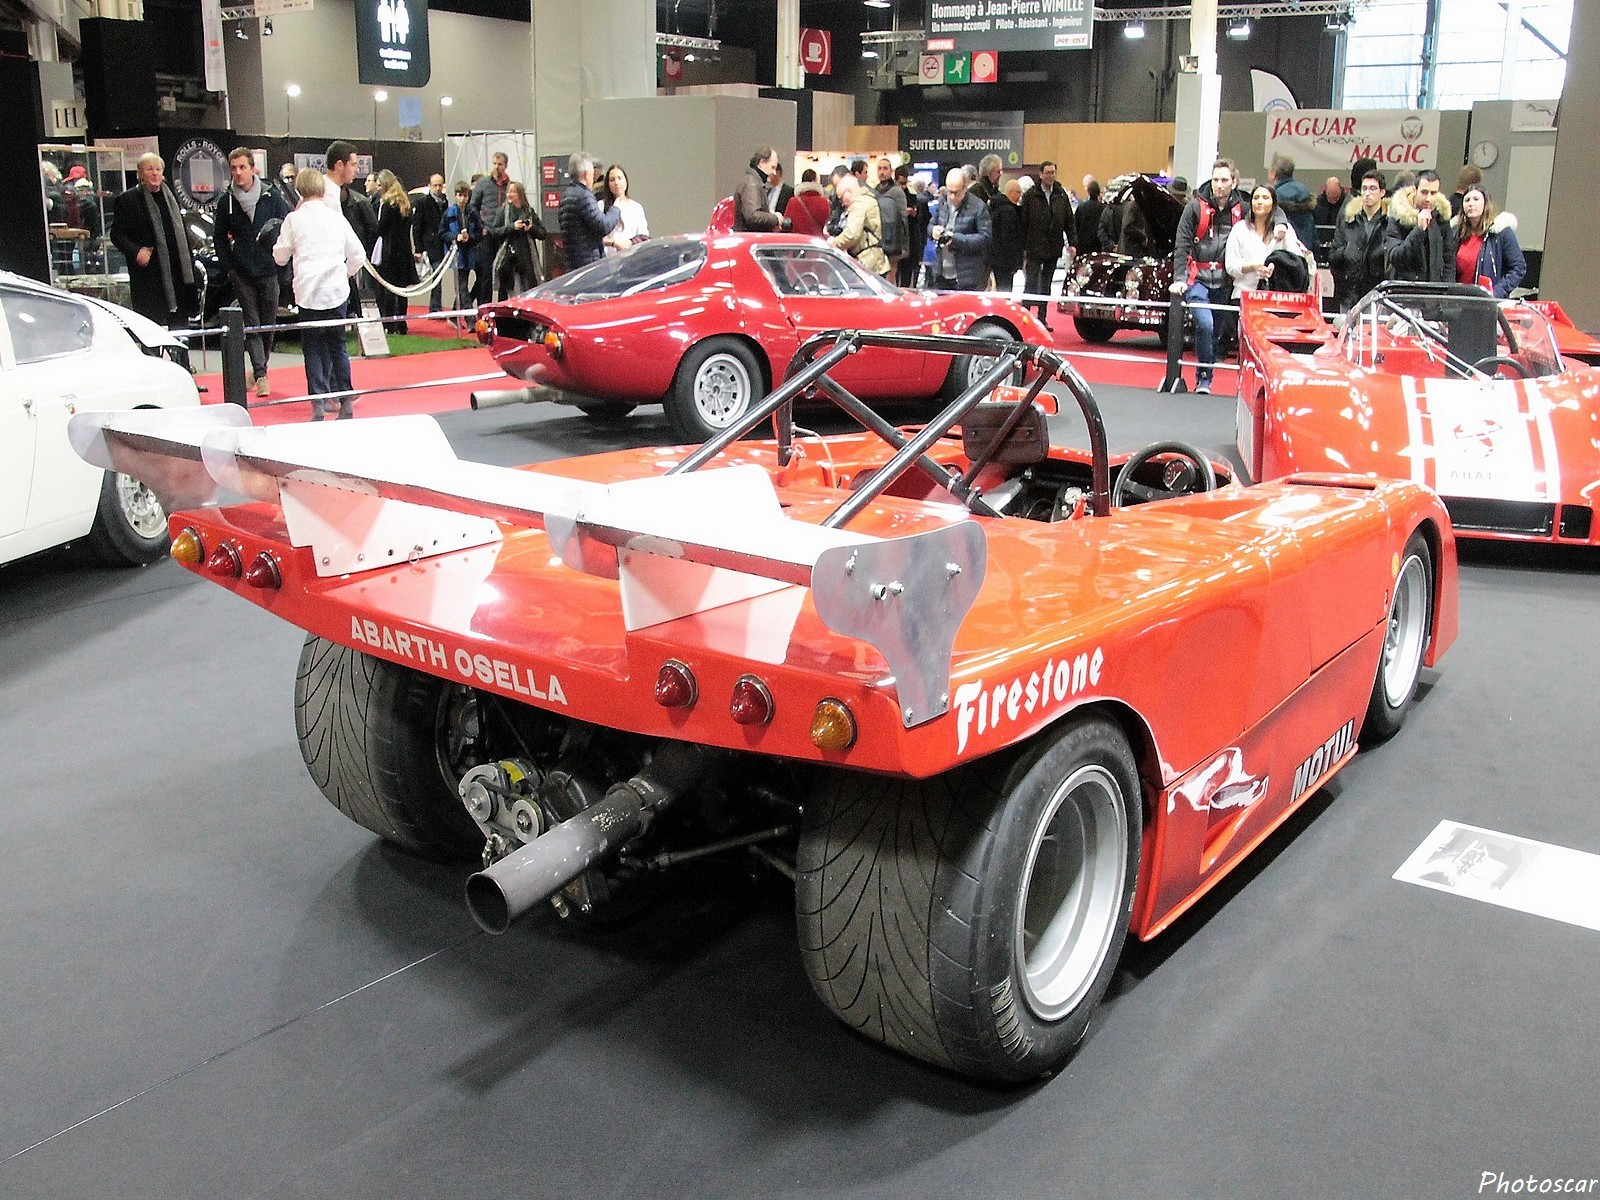 Abarth Osella 2000 Spider Prototype 1972